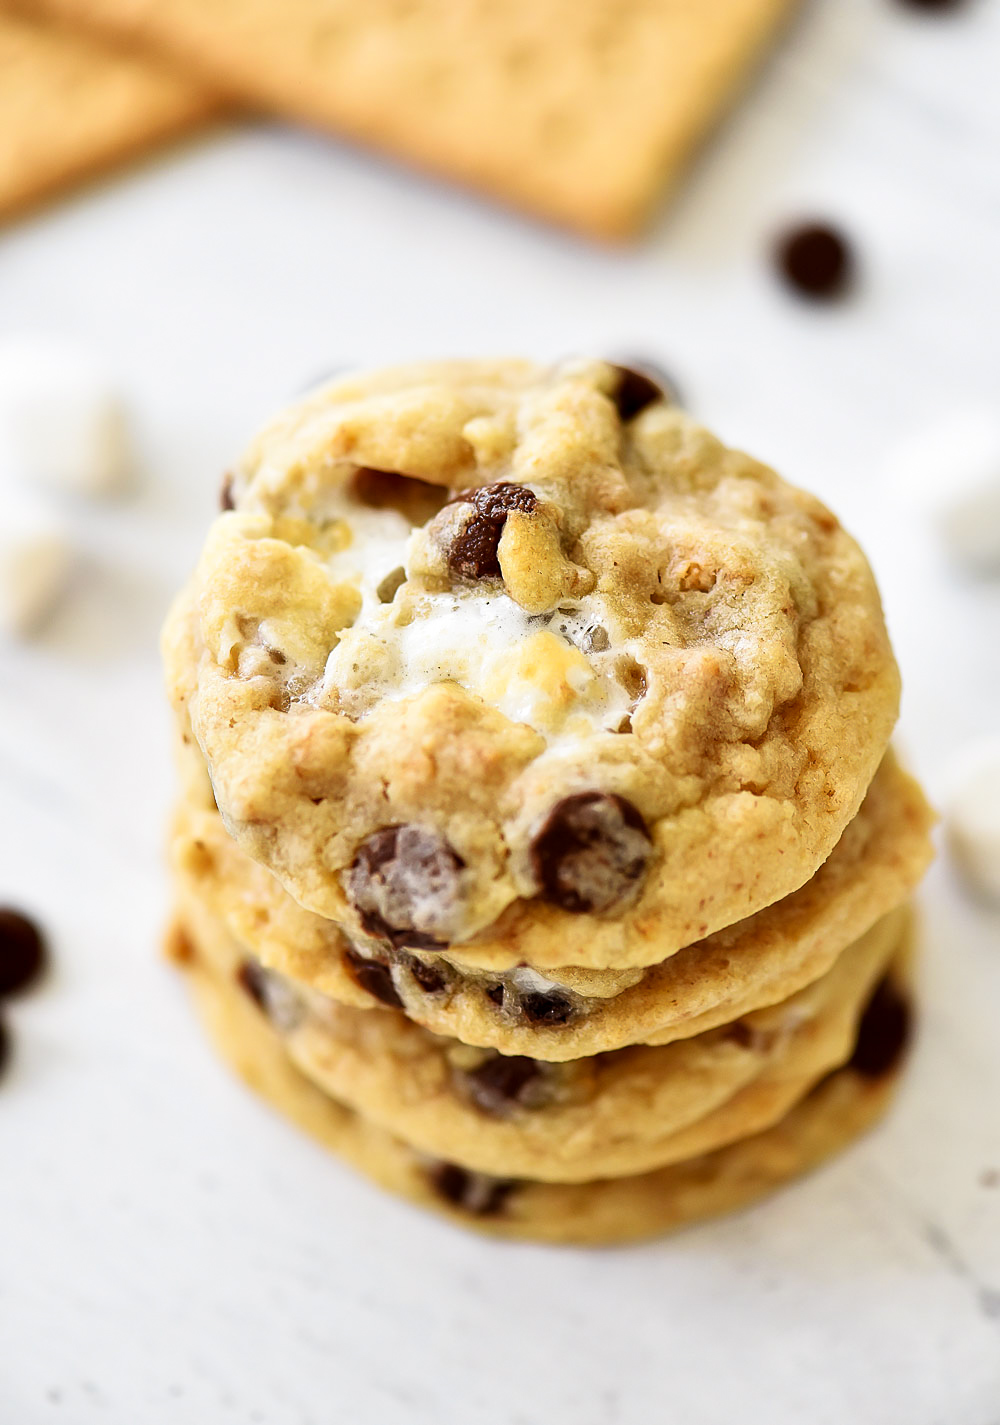 Chocolate Chip Cookies filled with marshmallow and graham cracker crumbs. Life-in-the-Lofthouse.com